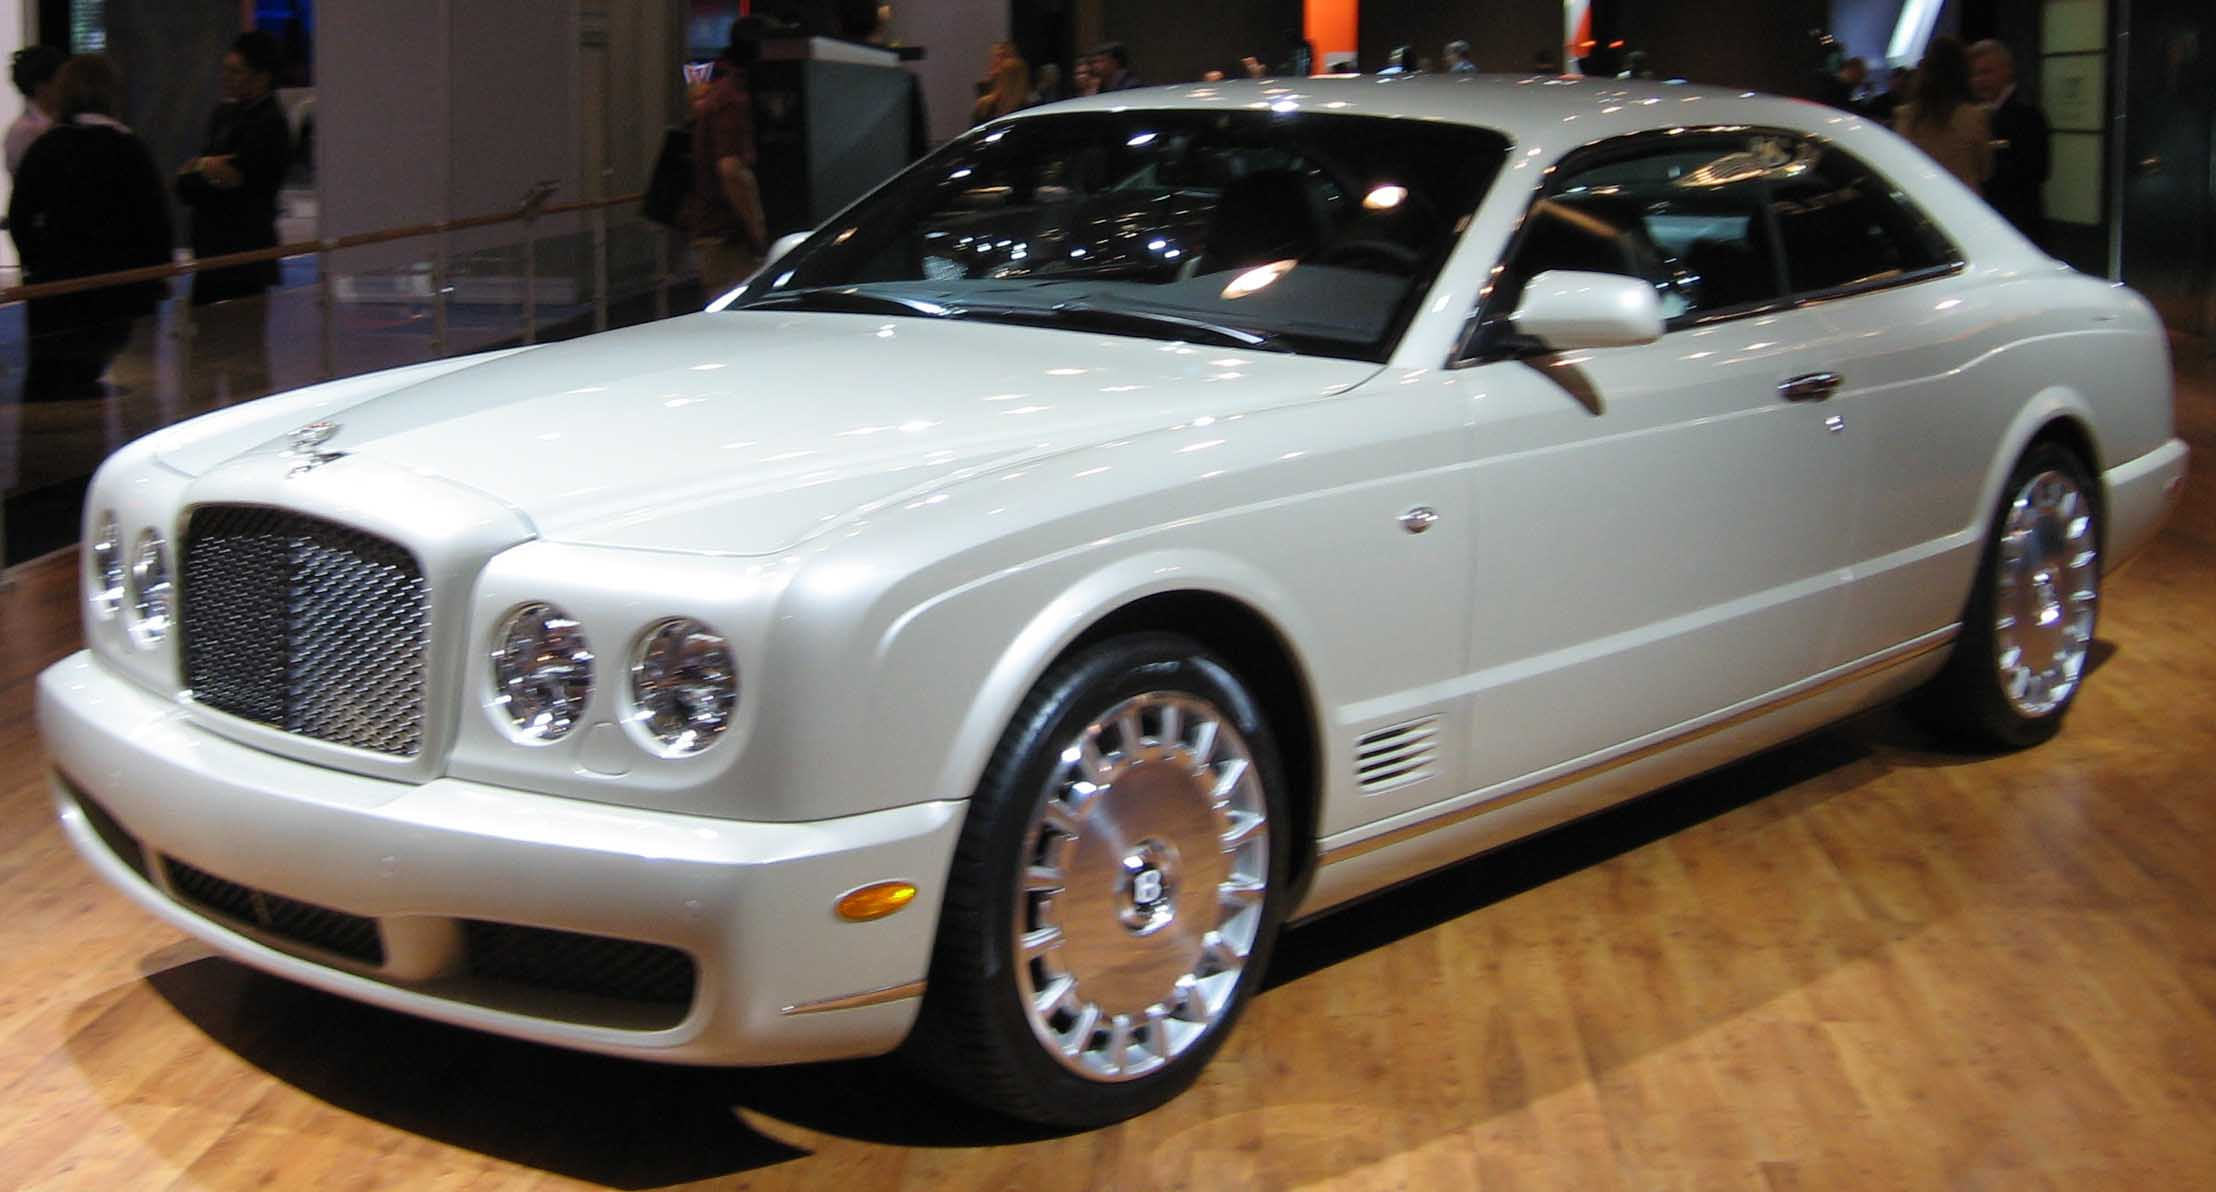 arnage pictures specs for and auto sale information rl bentley